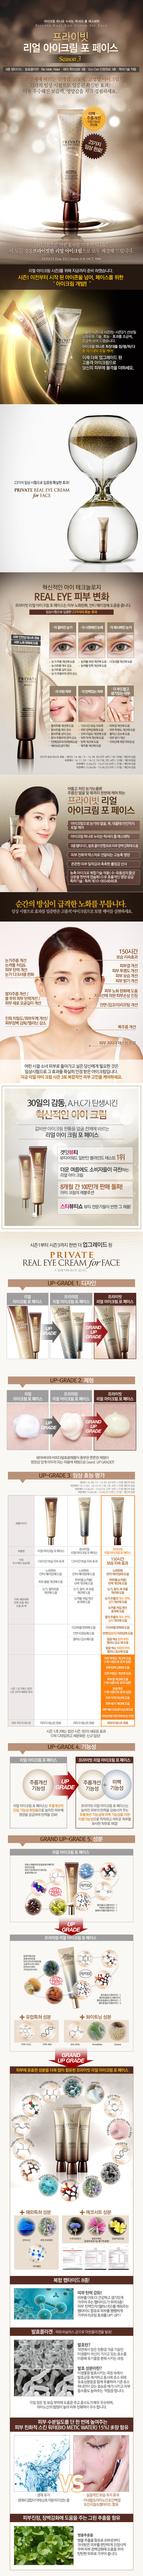 AHC Private Real Eye Cream For Face malaysia singapore indonesia